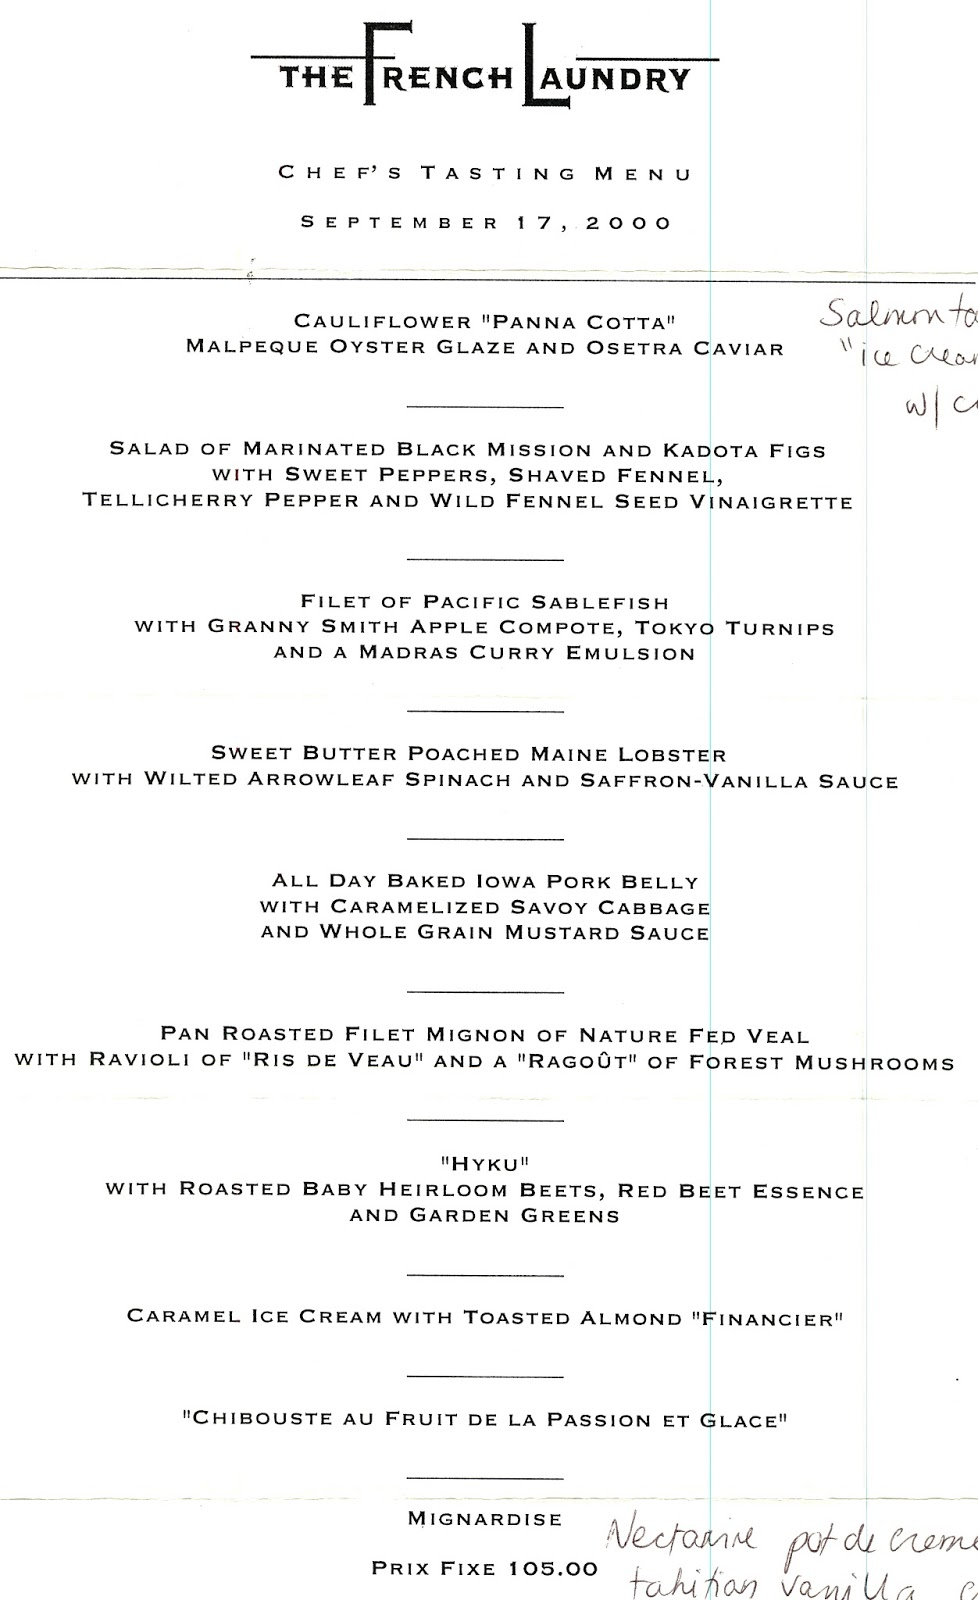 Image result for French Laundry menu